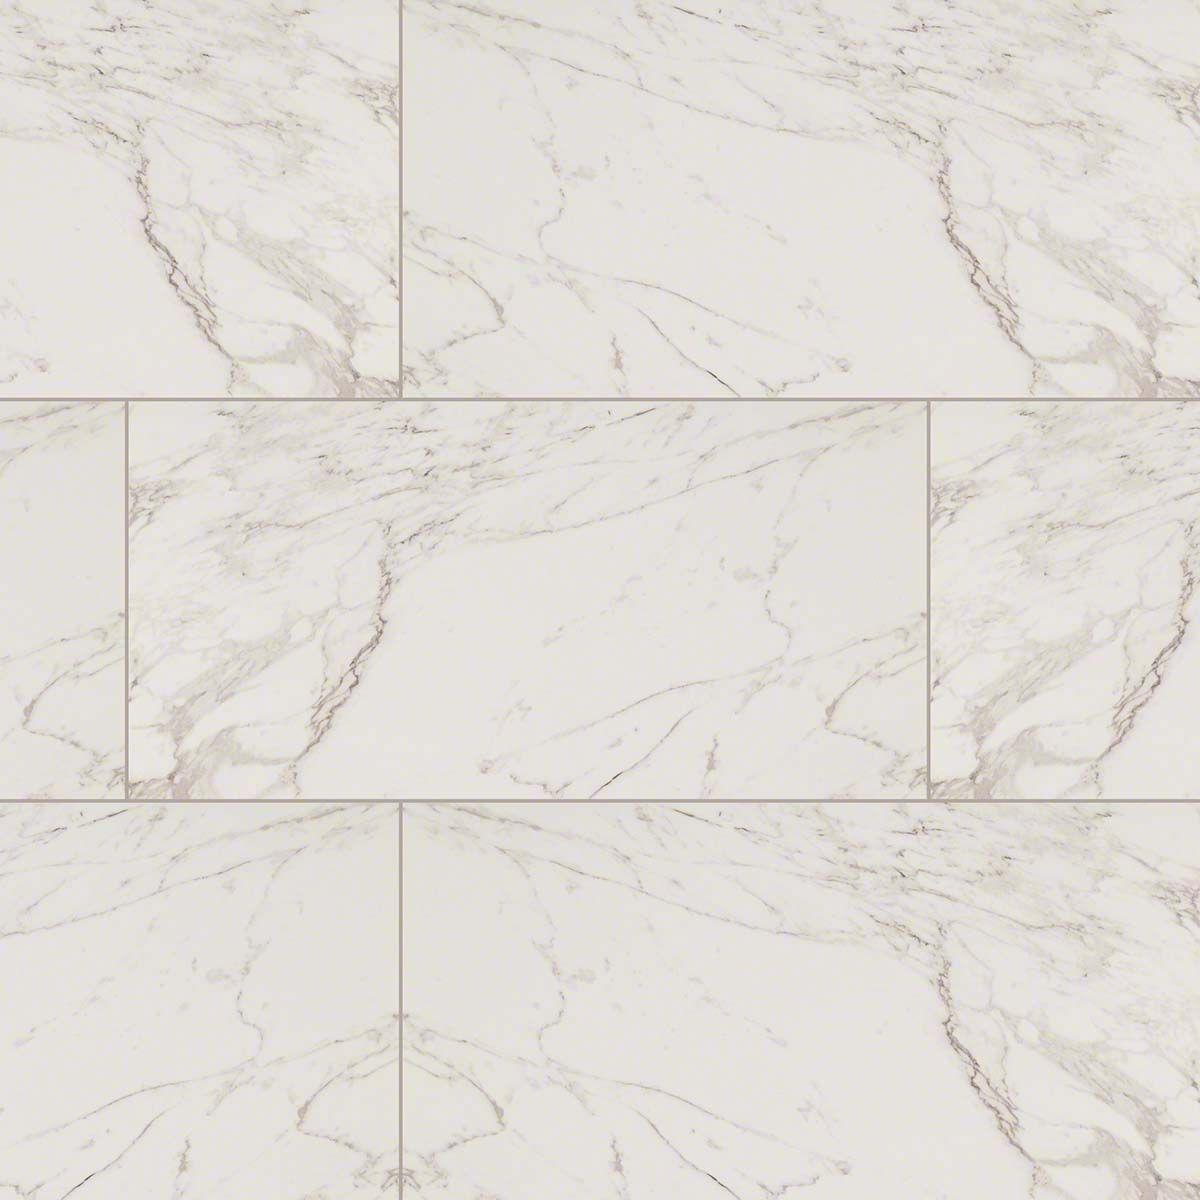 Msi Pietra Series Carrara Marble Look Porcelain Tile In Polished Finished Size 12